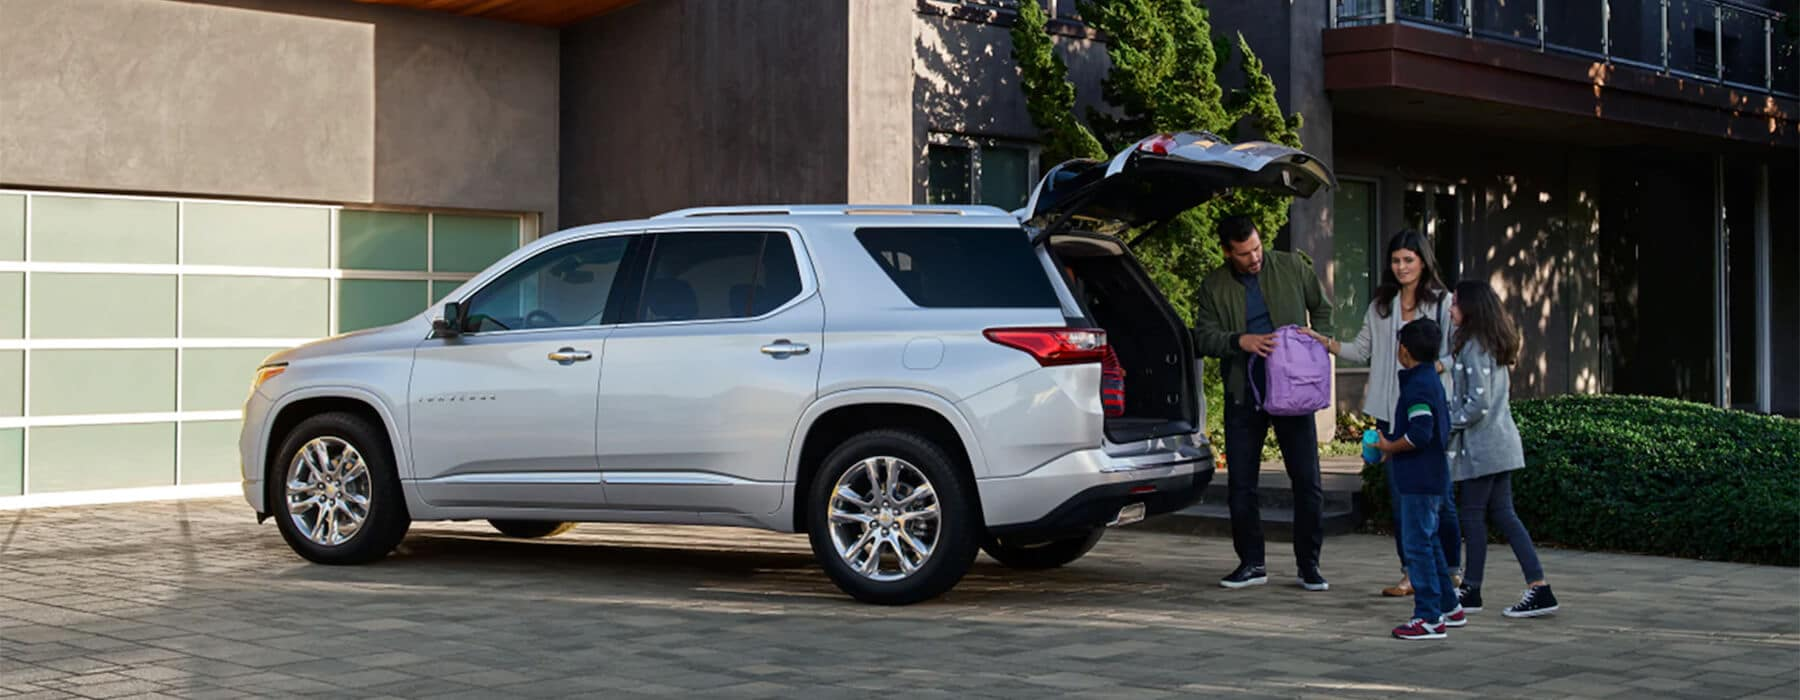 Introducing the New 2021 Chevy Traverse Slider